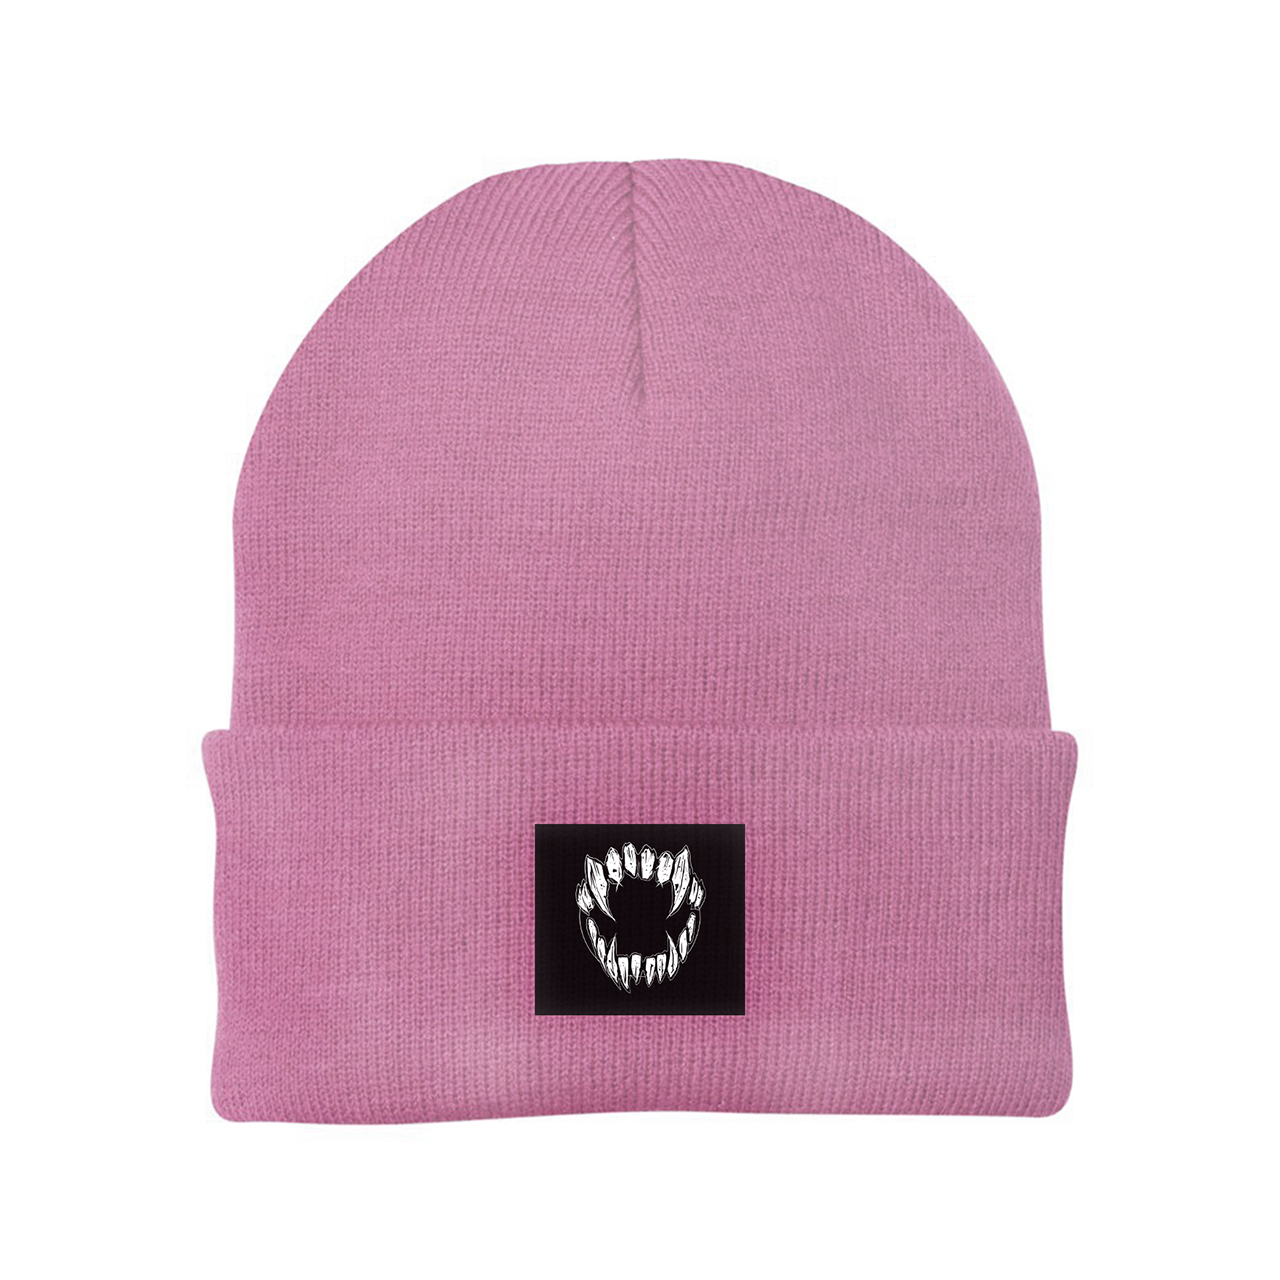 GHOSTKID Ghøstkid - Vampire Teeth Patch Beanie Beanie, dusty pink